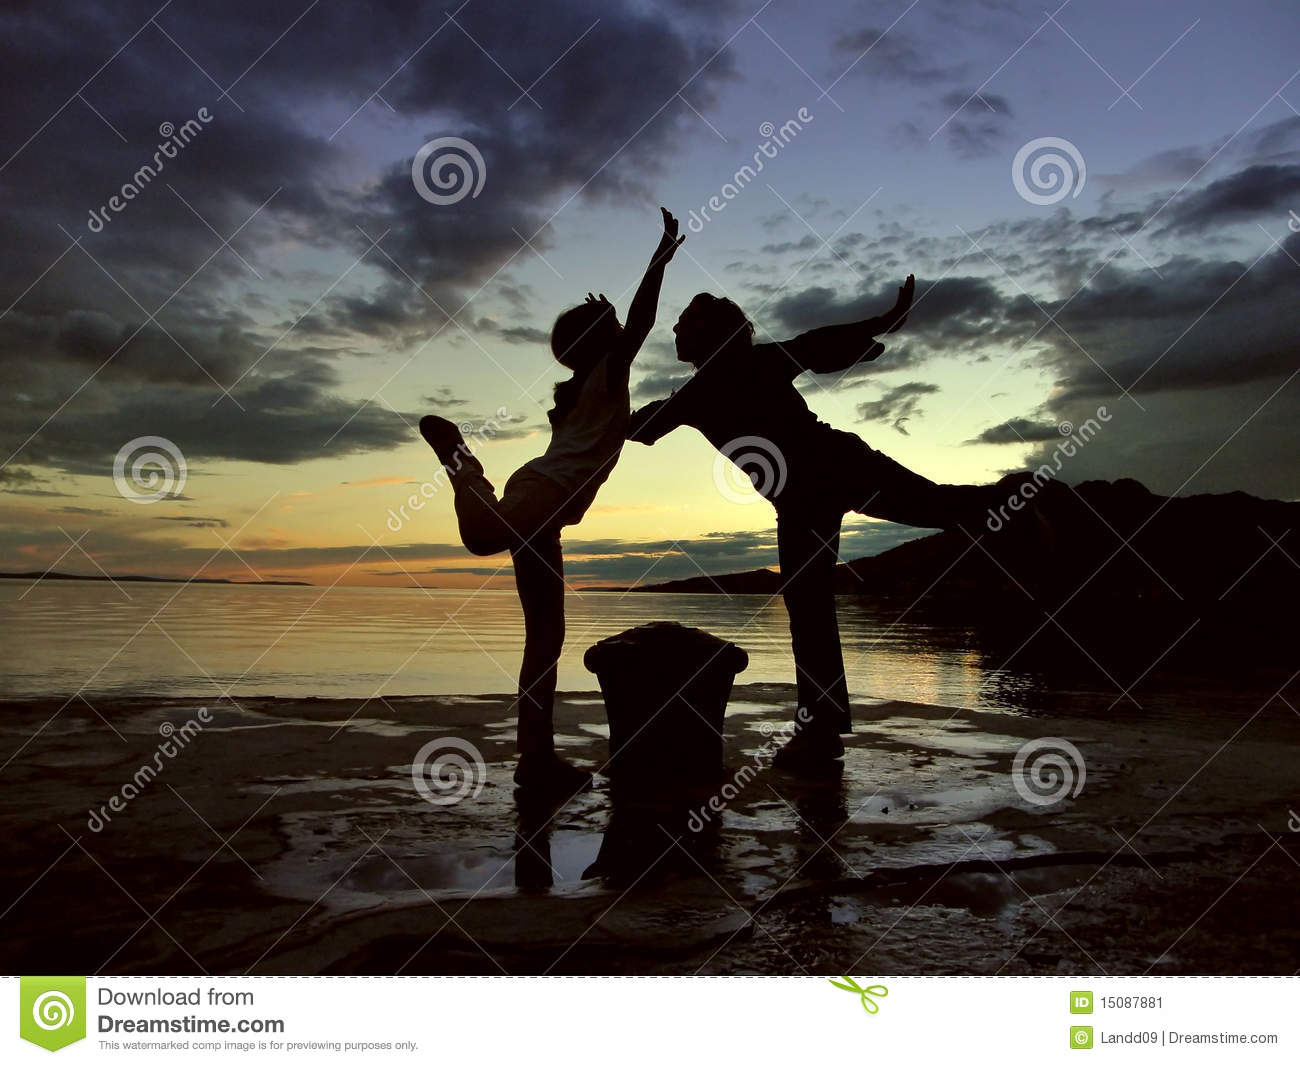 Dancers in sunset at sea